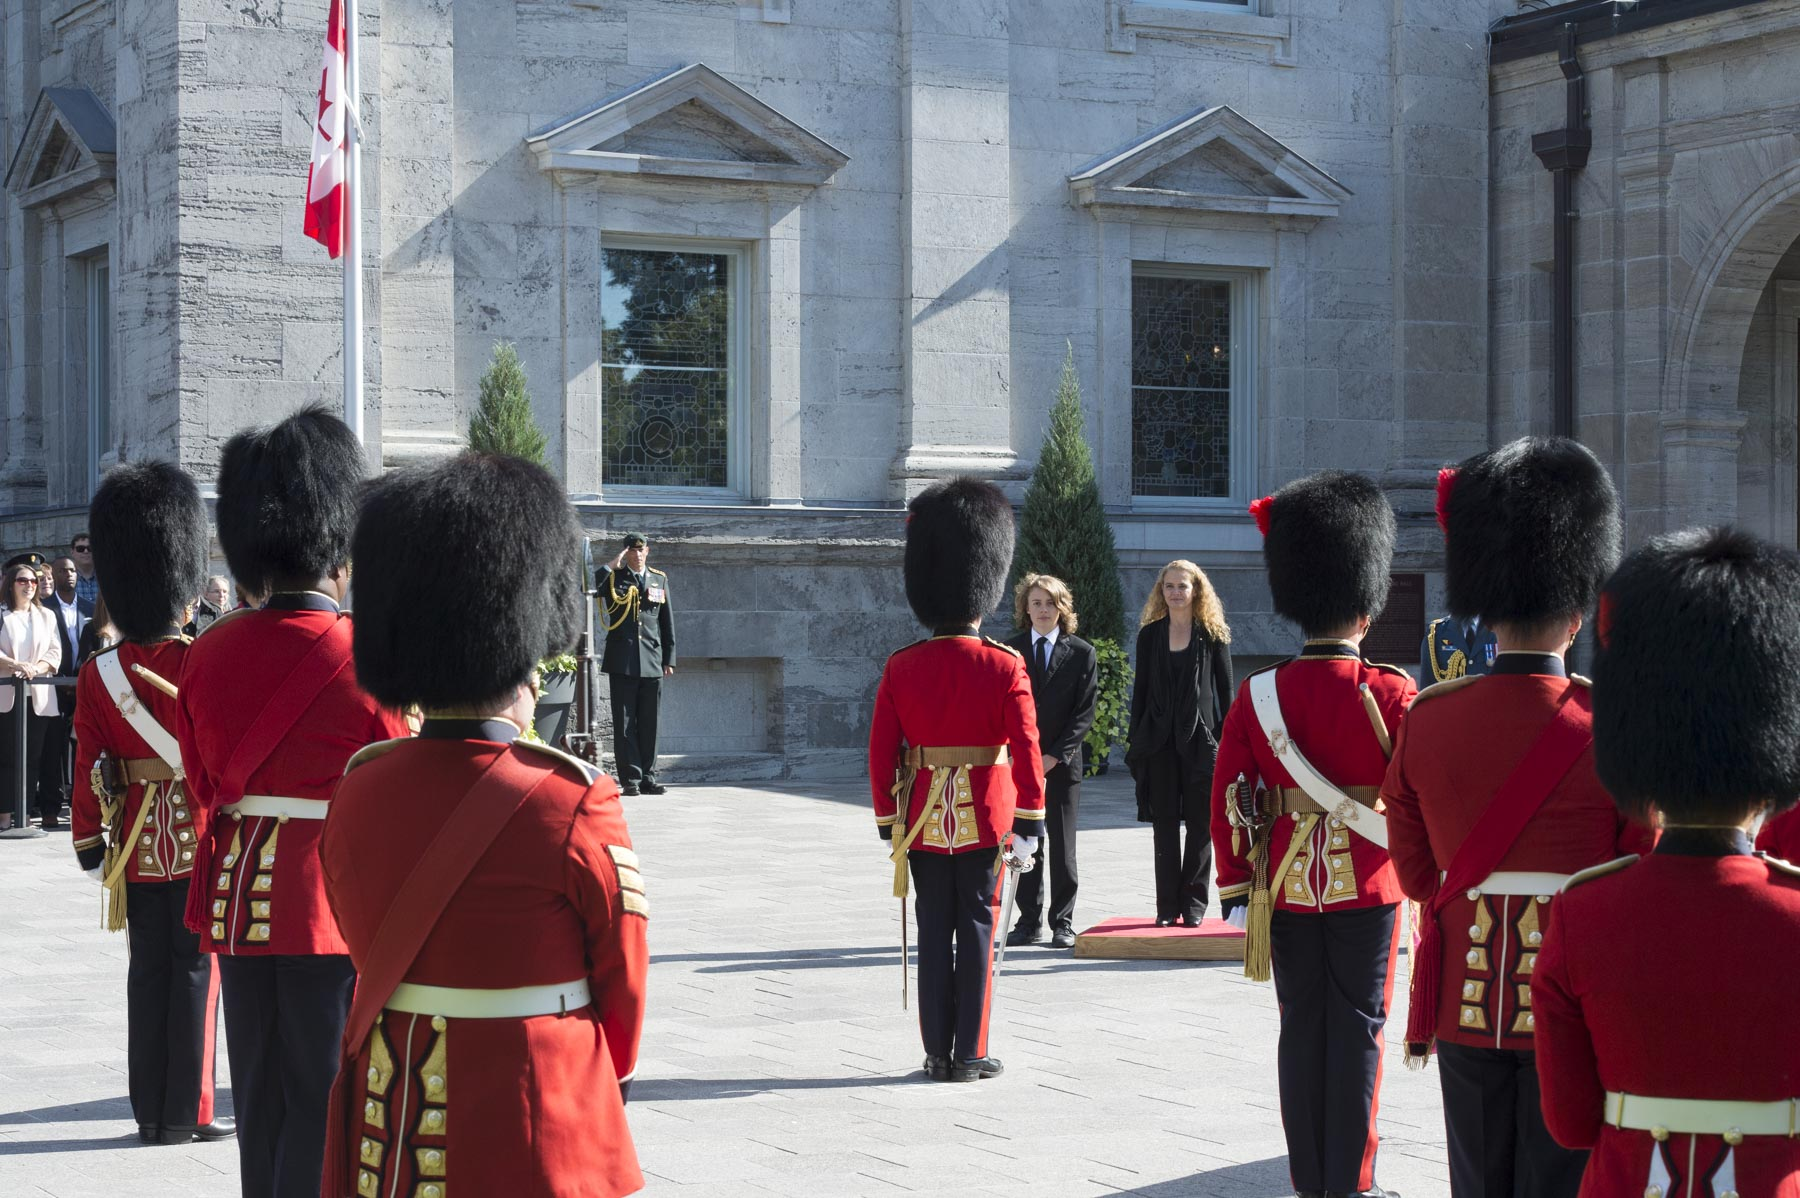 Upon her official arrival at Rideau Hall, the Governor General was greeted by a 100-person guard of honour.